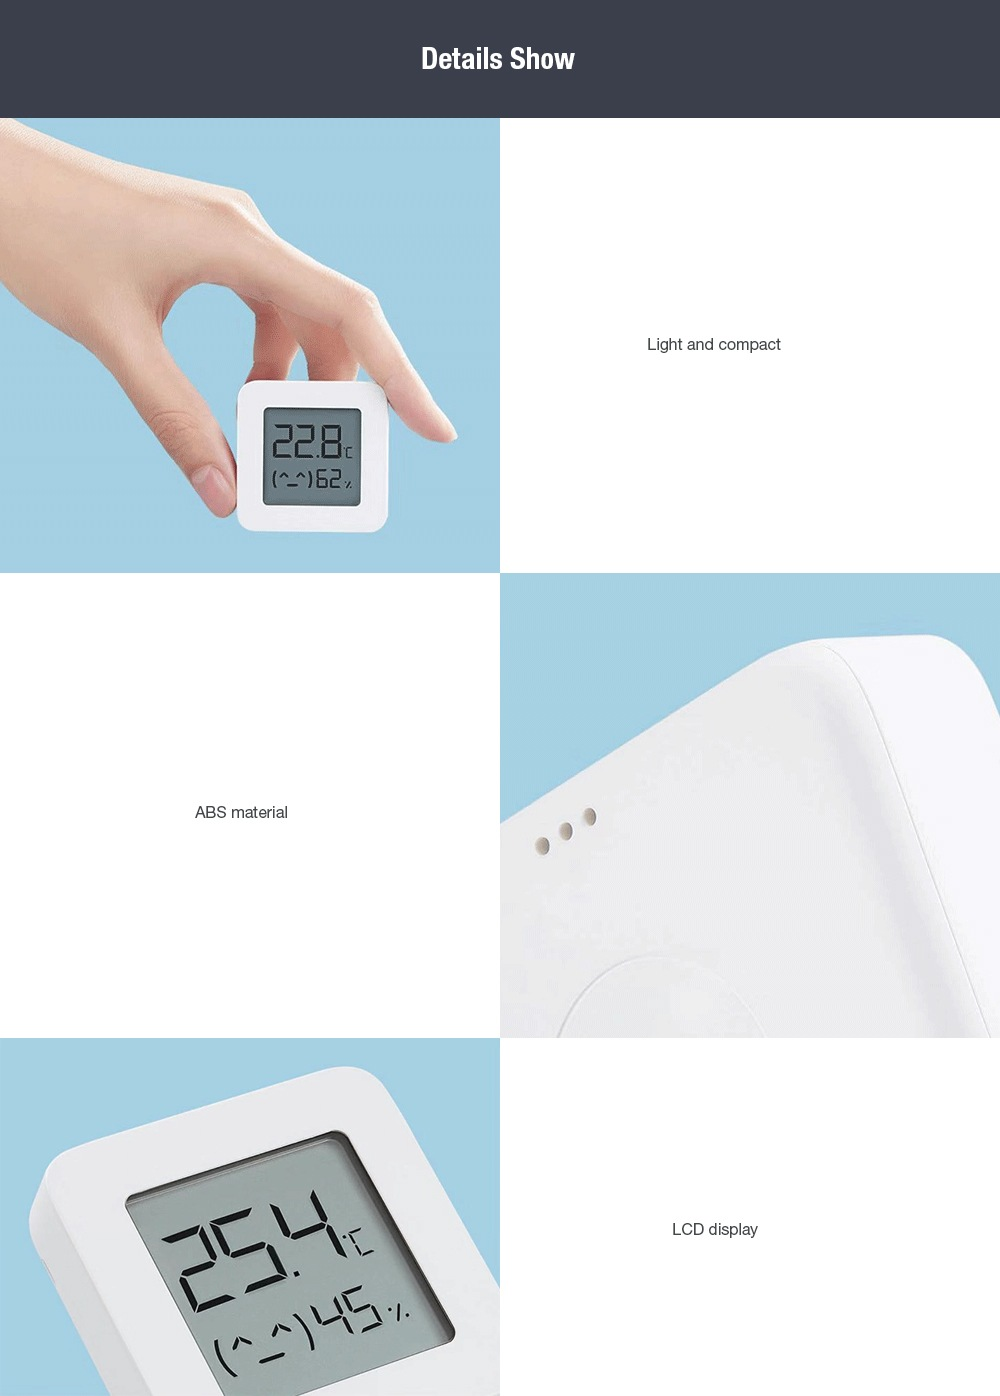 [Newest Version] XIAOMI Mijia Bluetooth Thermometer 2 Wireless Smart Electric Digital Hygrometer Thermometer Work with Mijia APP (7)